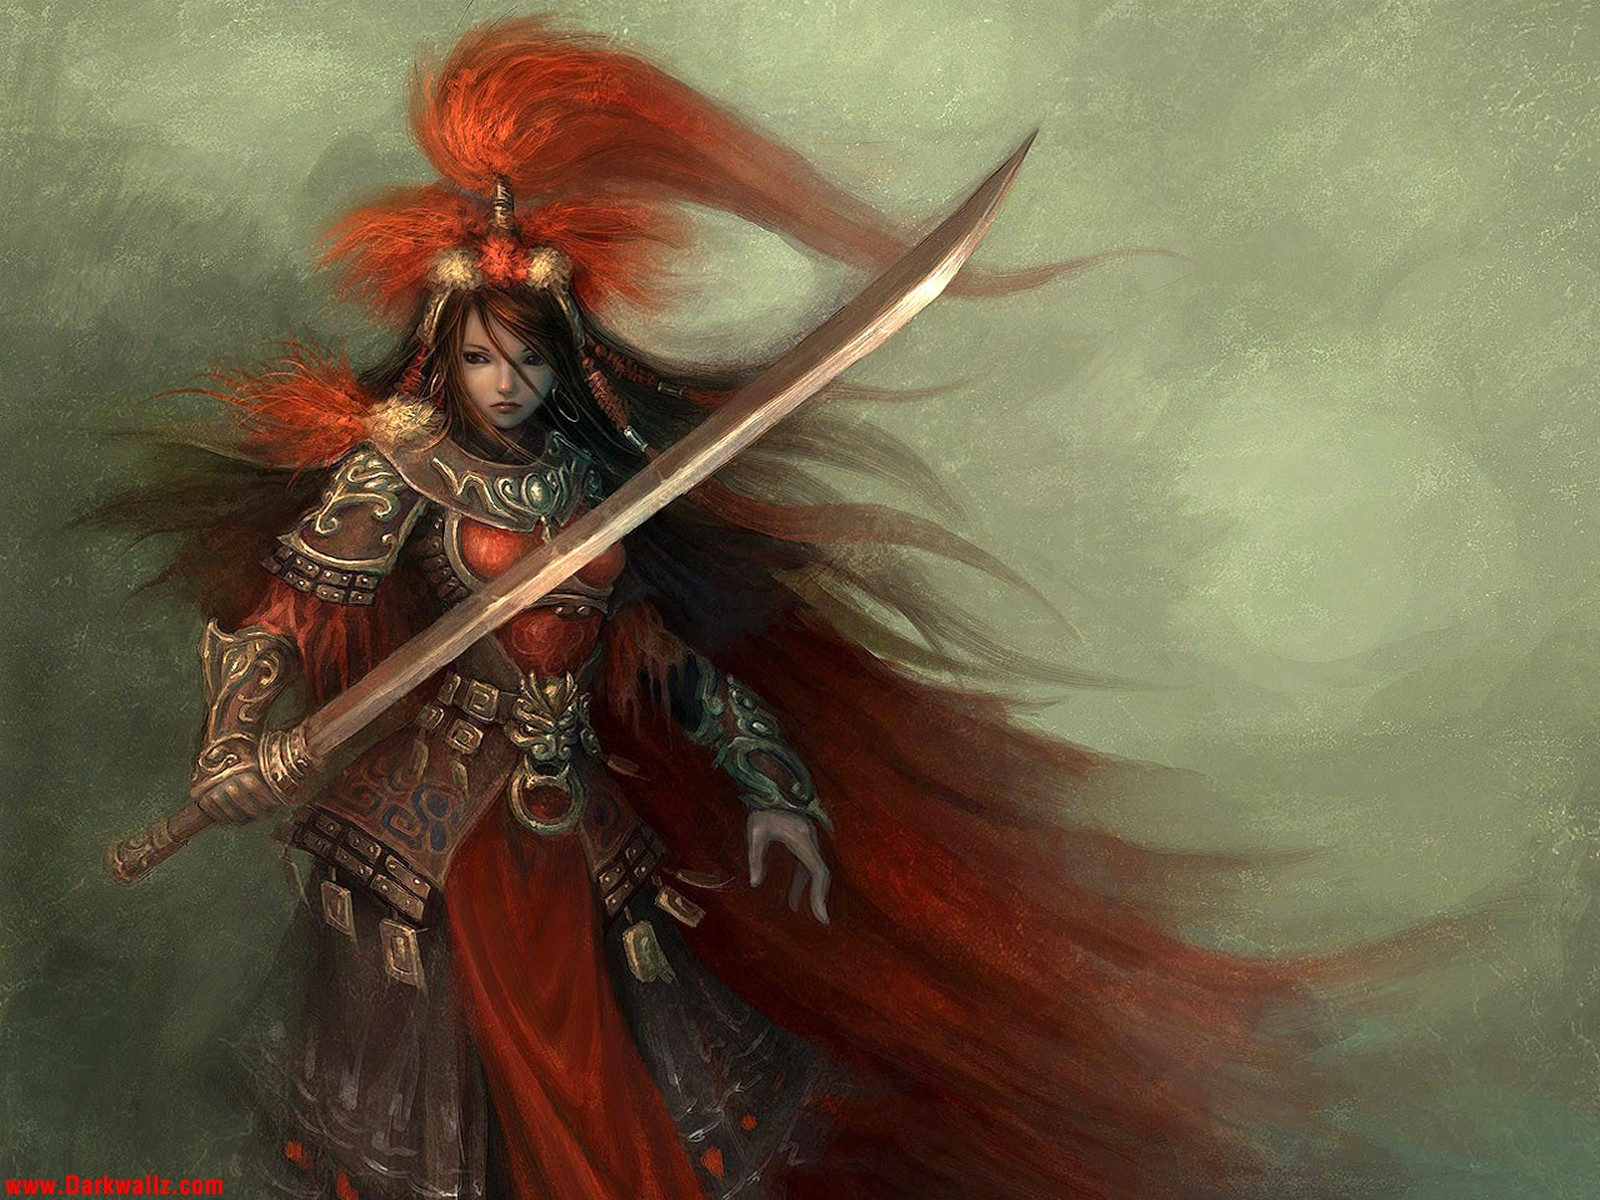 Warrior Wallpapers 13 | Dark Wallpaper Download